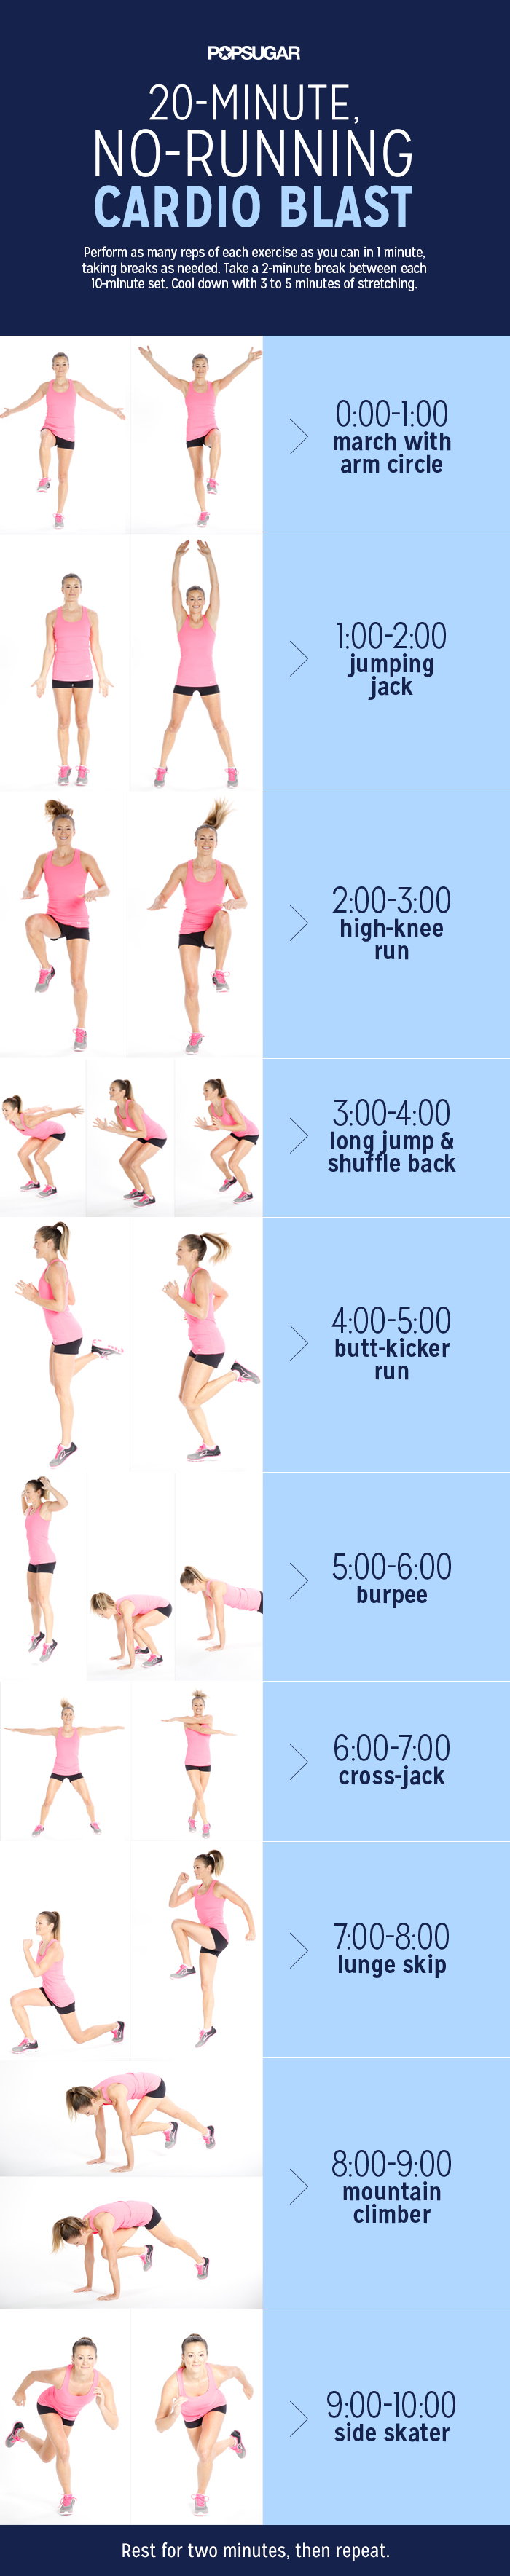 Home cardio workout no running